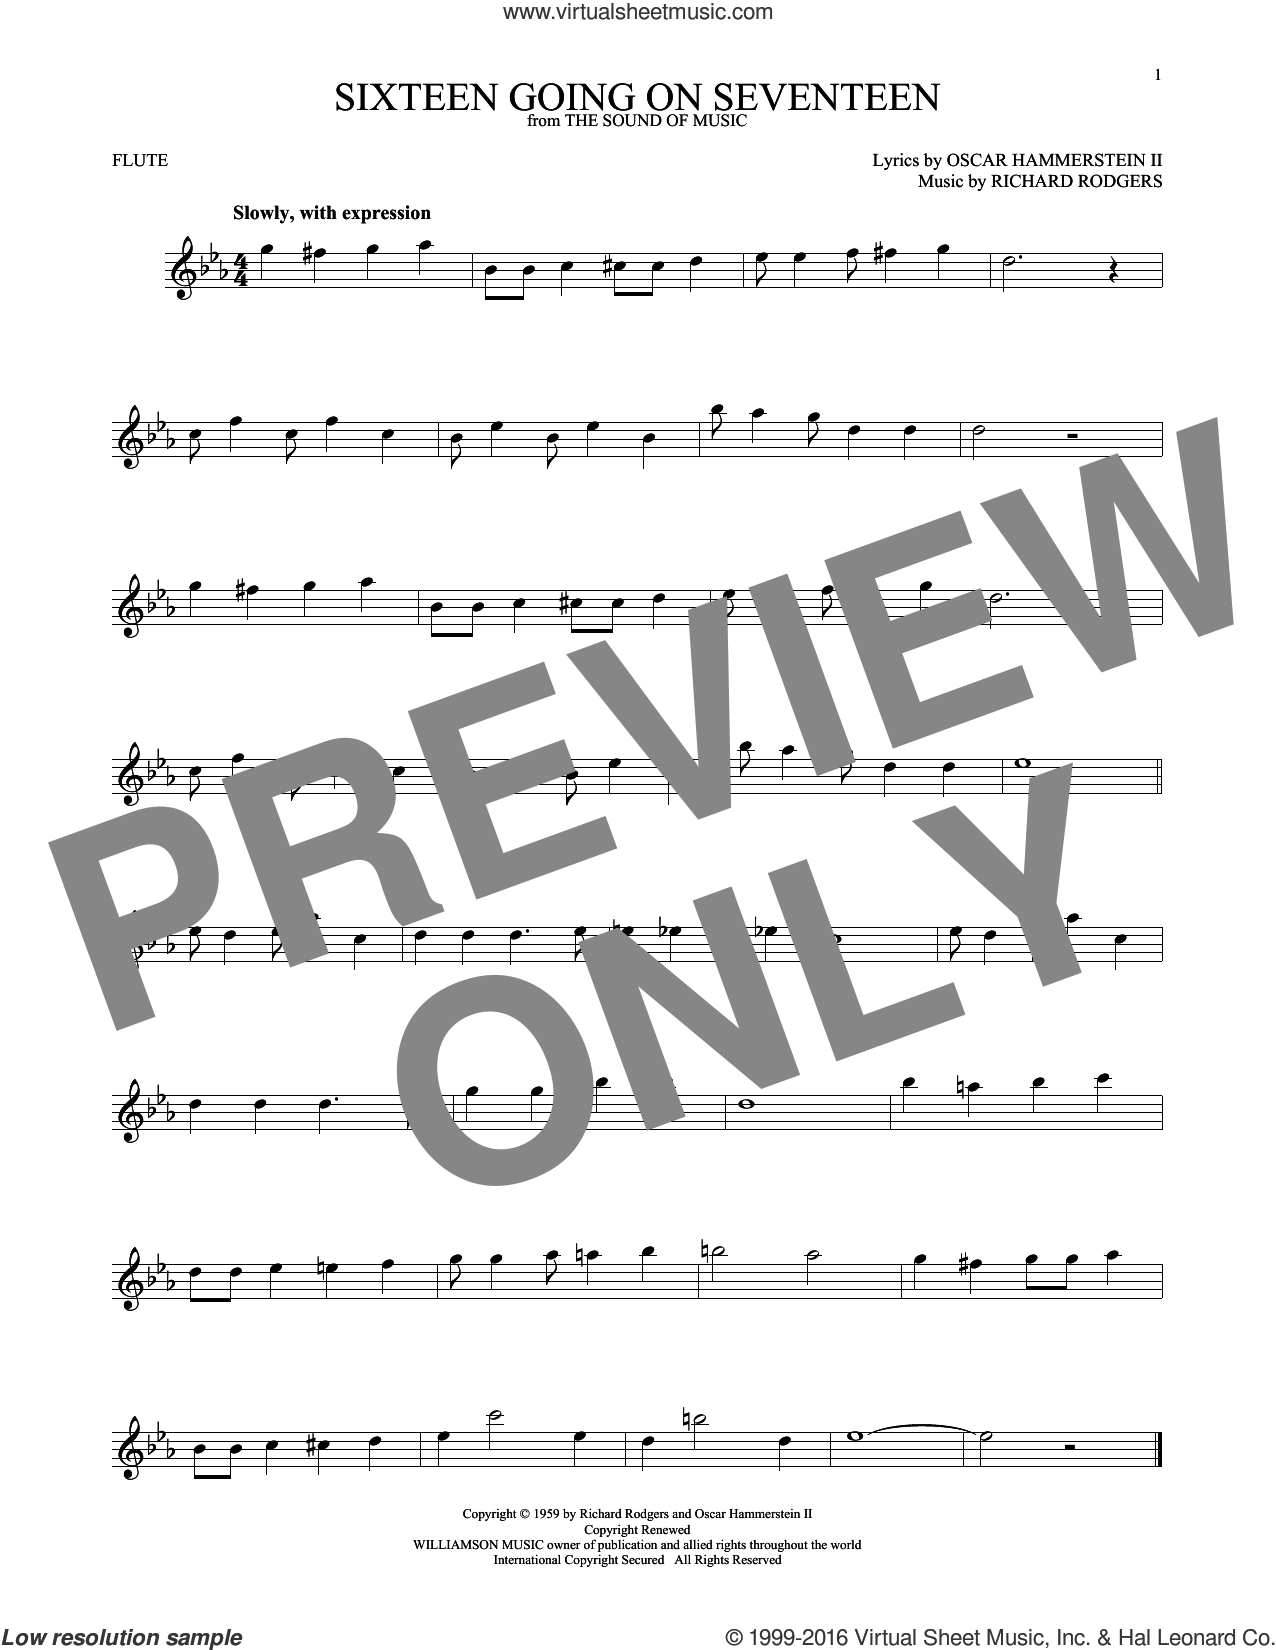 Sixteen Going On Seventeen sheet music for flute solo by Rodgers & Hammerstein, Oscar II Hammerstein and Richard Rodgers, intermediate skill level